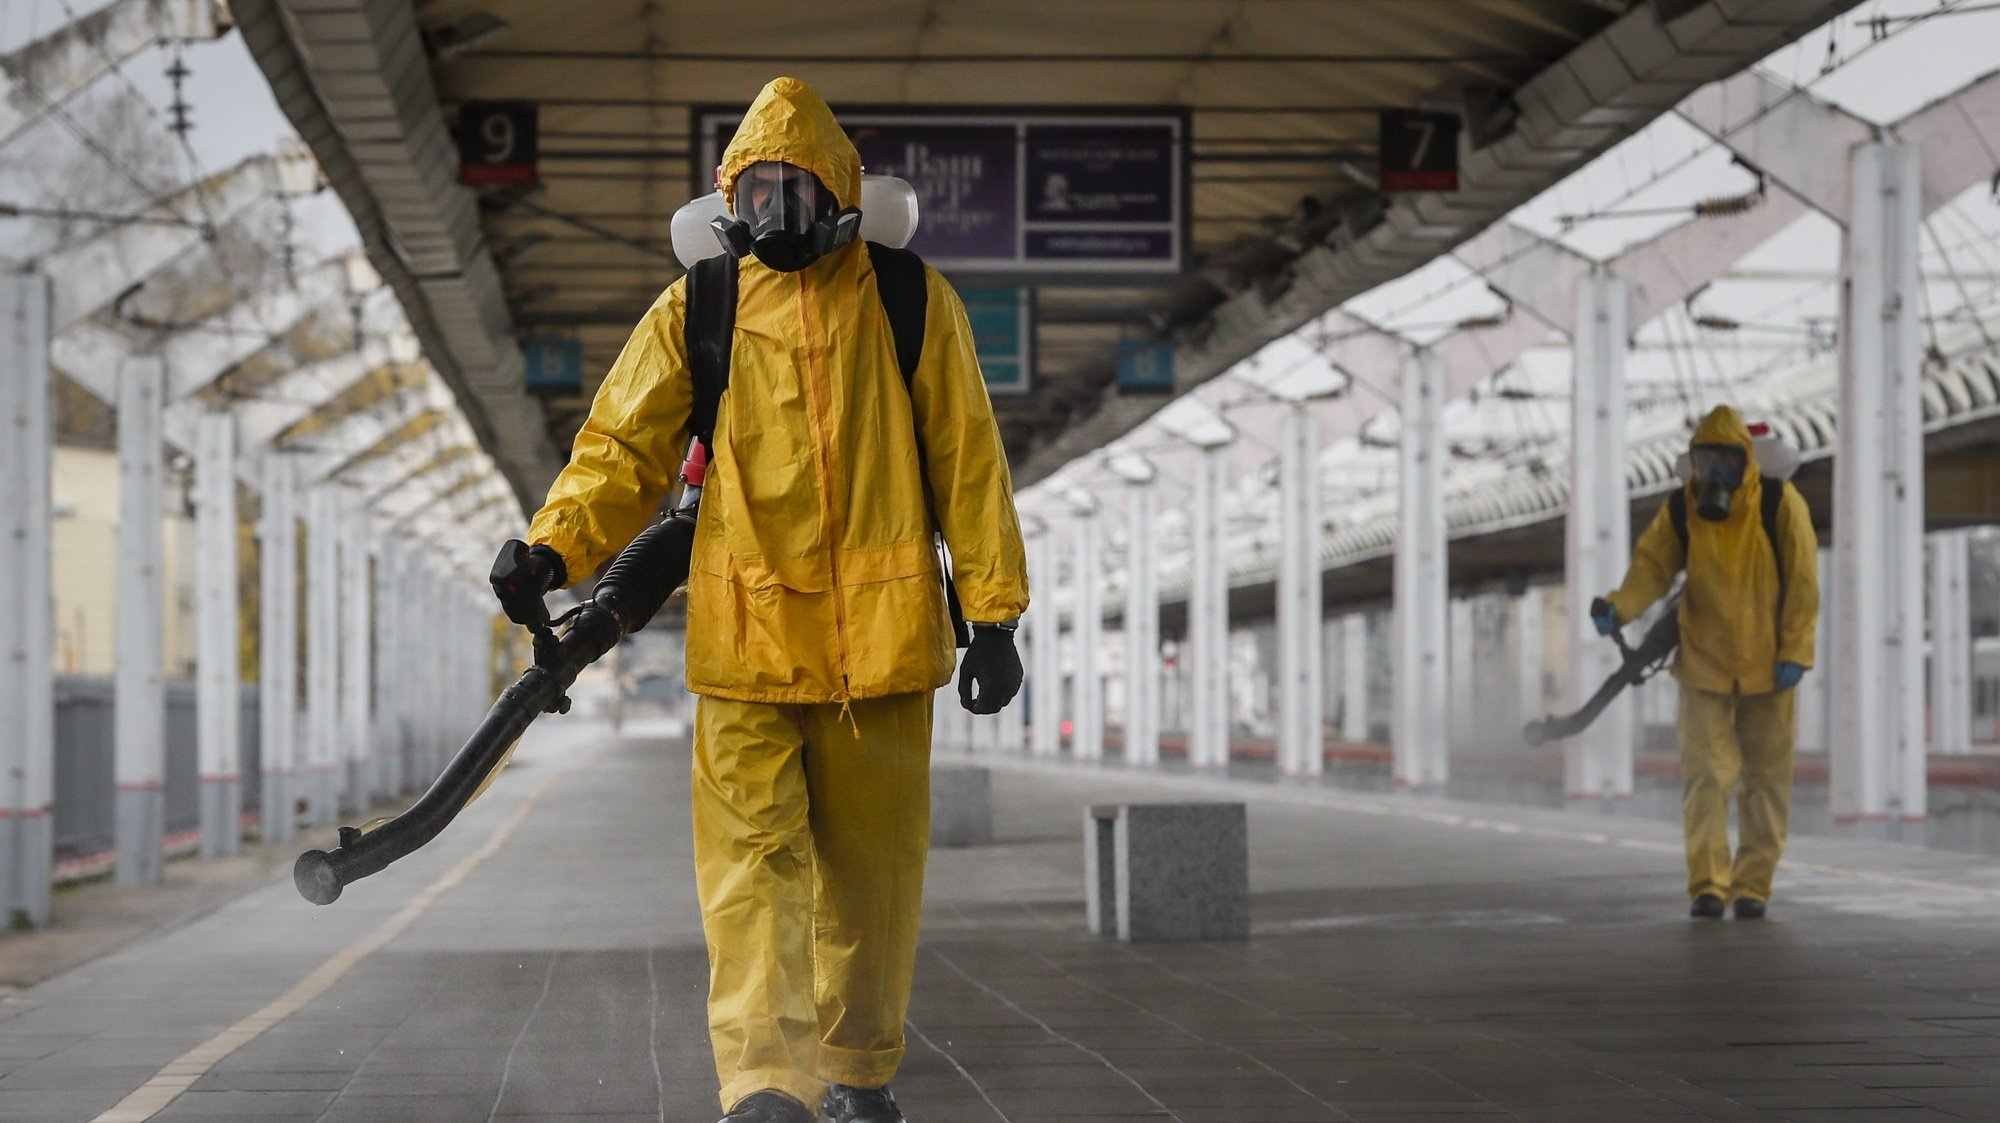 epaselect epa09531810 Worker from the Russian Ministry of Emergency Situations wearing protective suits conduct disinfecting works at Leningradsky Railway Station amid the ongoing coronavirus disease (COVID-19) pandemic in Moscow, Russia, 19 October 2021. Russia is facing a new wave of COVID-19 infections, with additional 998 coronavirus-related deaths reported on 18 October, bringing the official death toll to 22,4310.  EPA/YURI KOCHETKOV